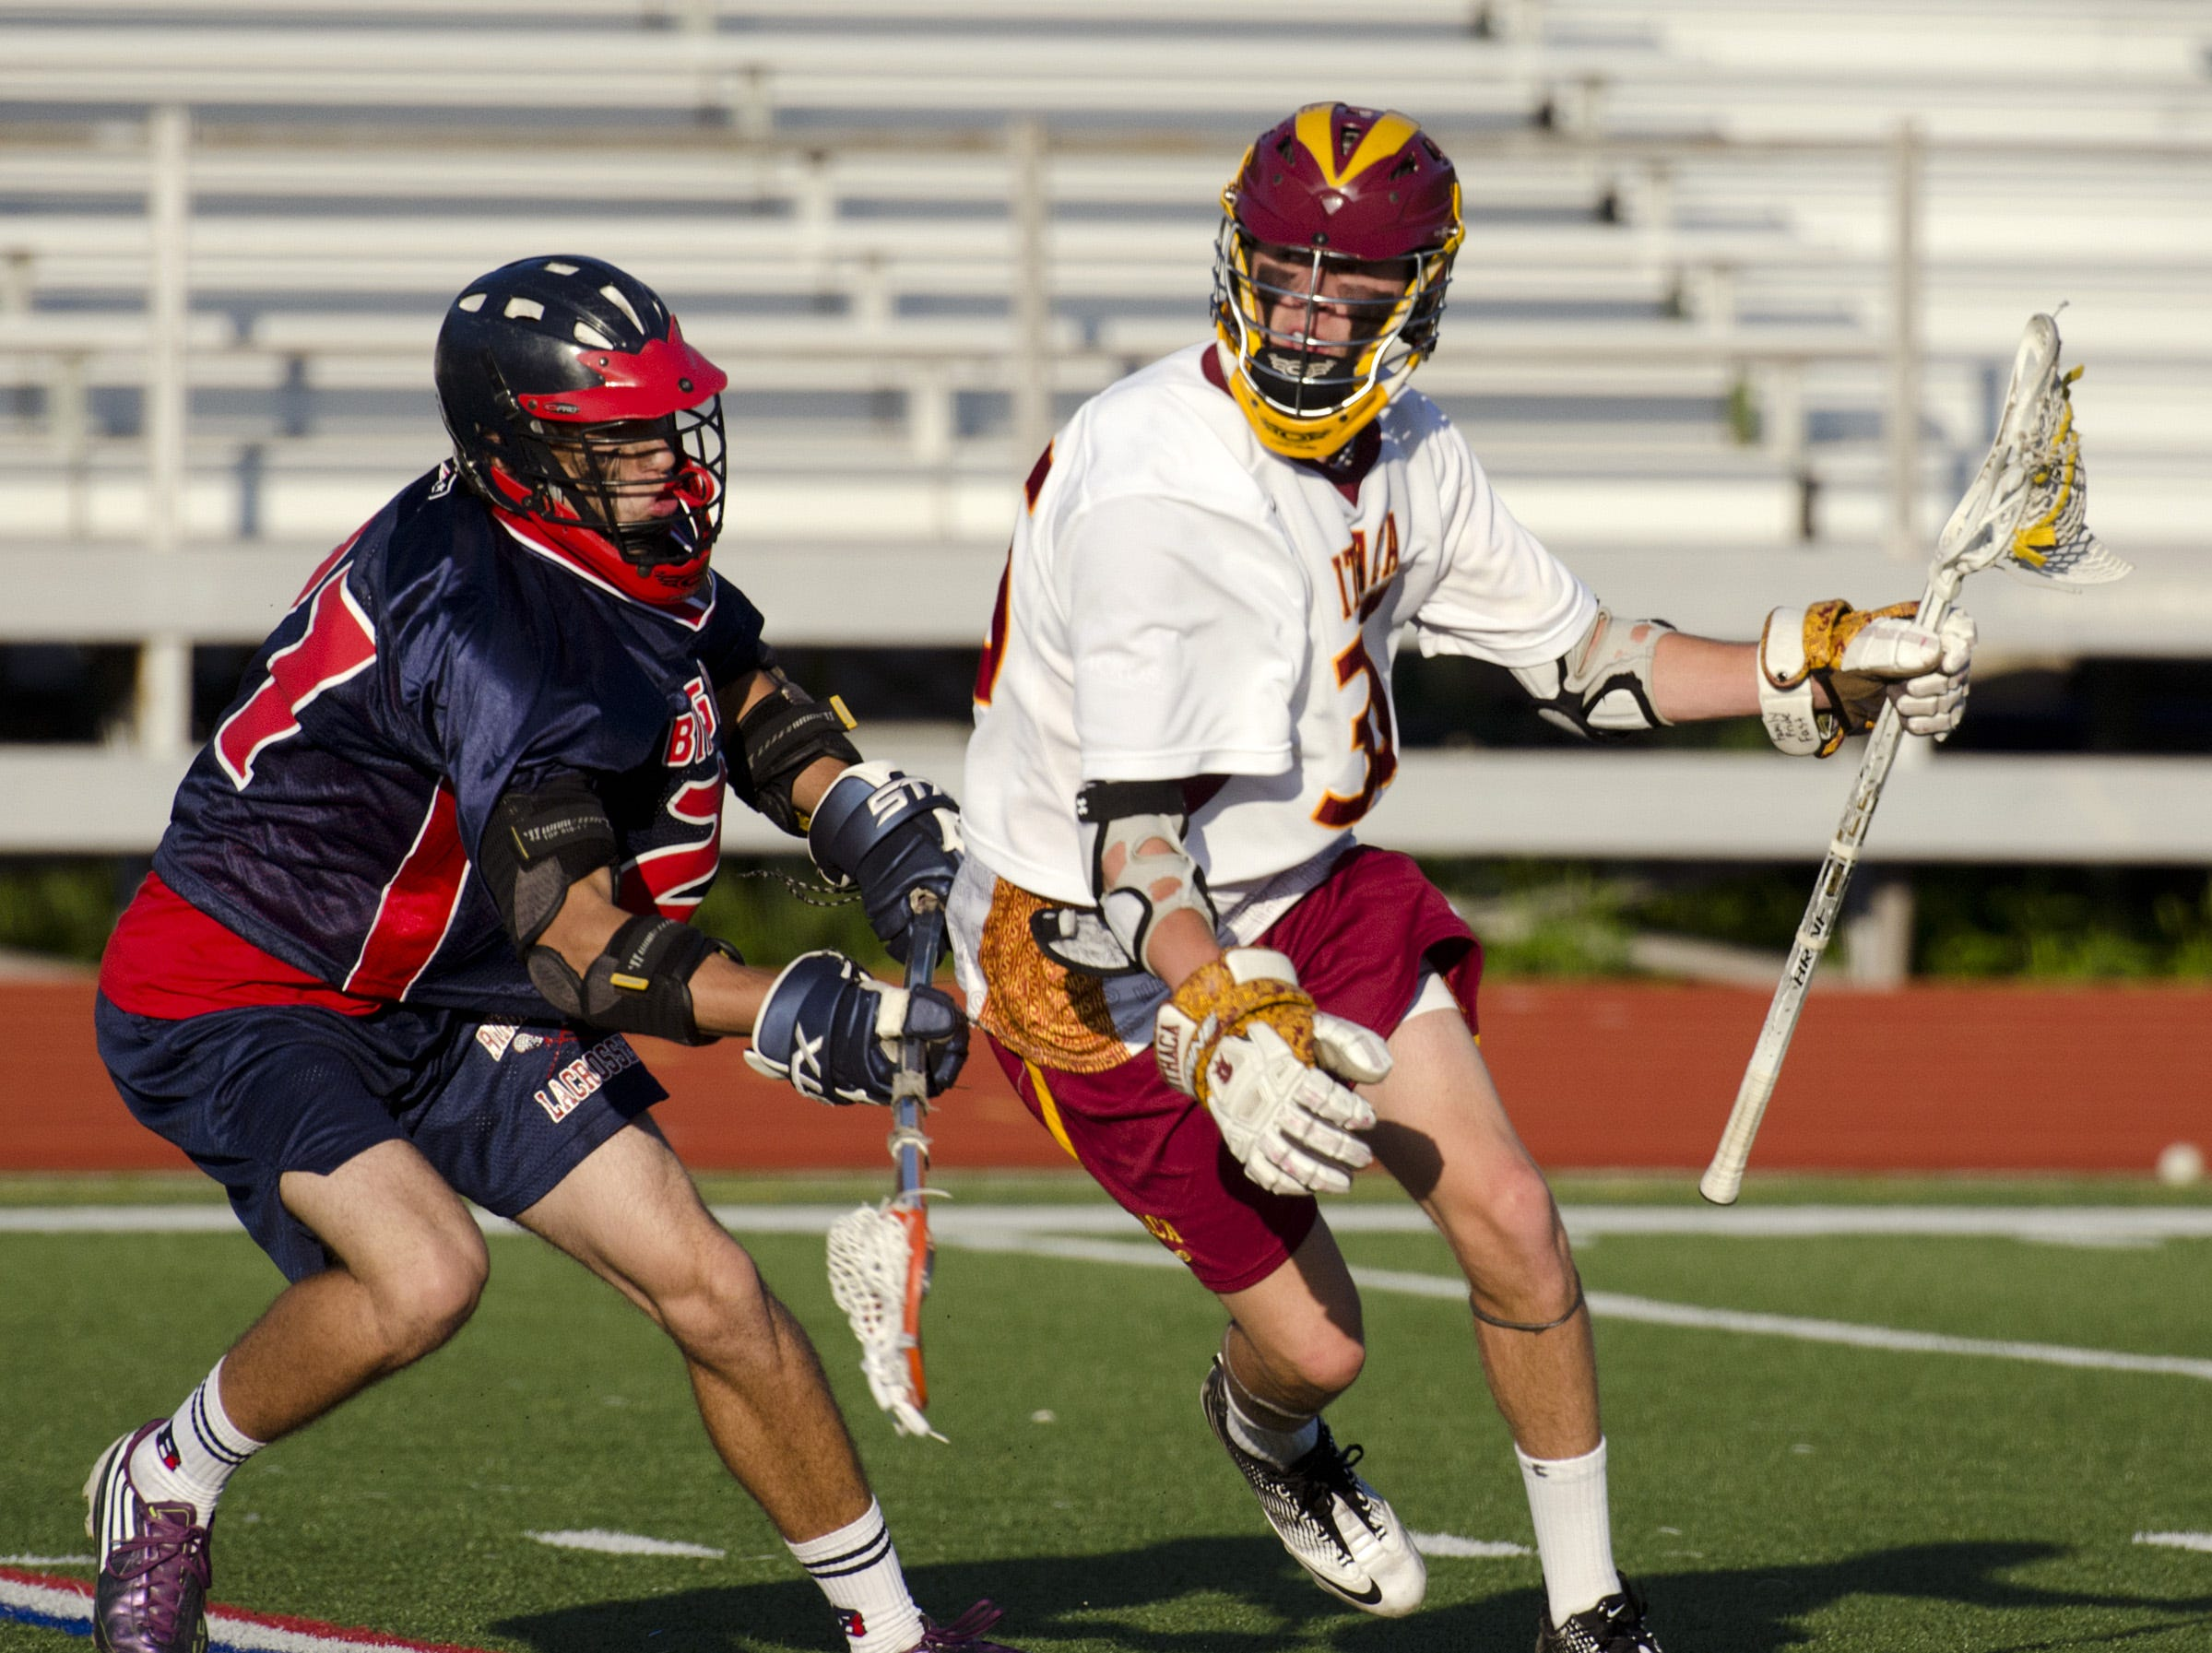 2012: Ithaca's Paolo Ciferri is guarded by Binghamton's Cody Graham just before Ciferri scores in the first half.